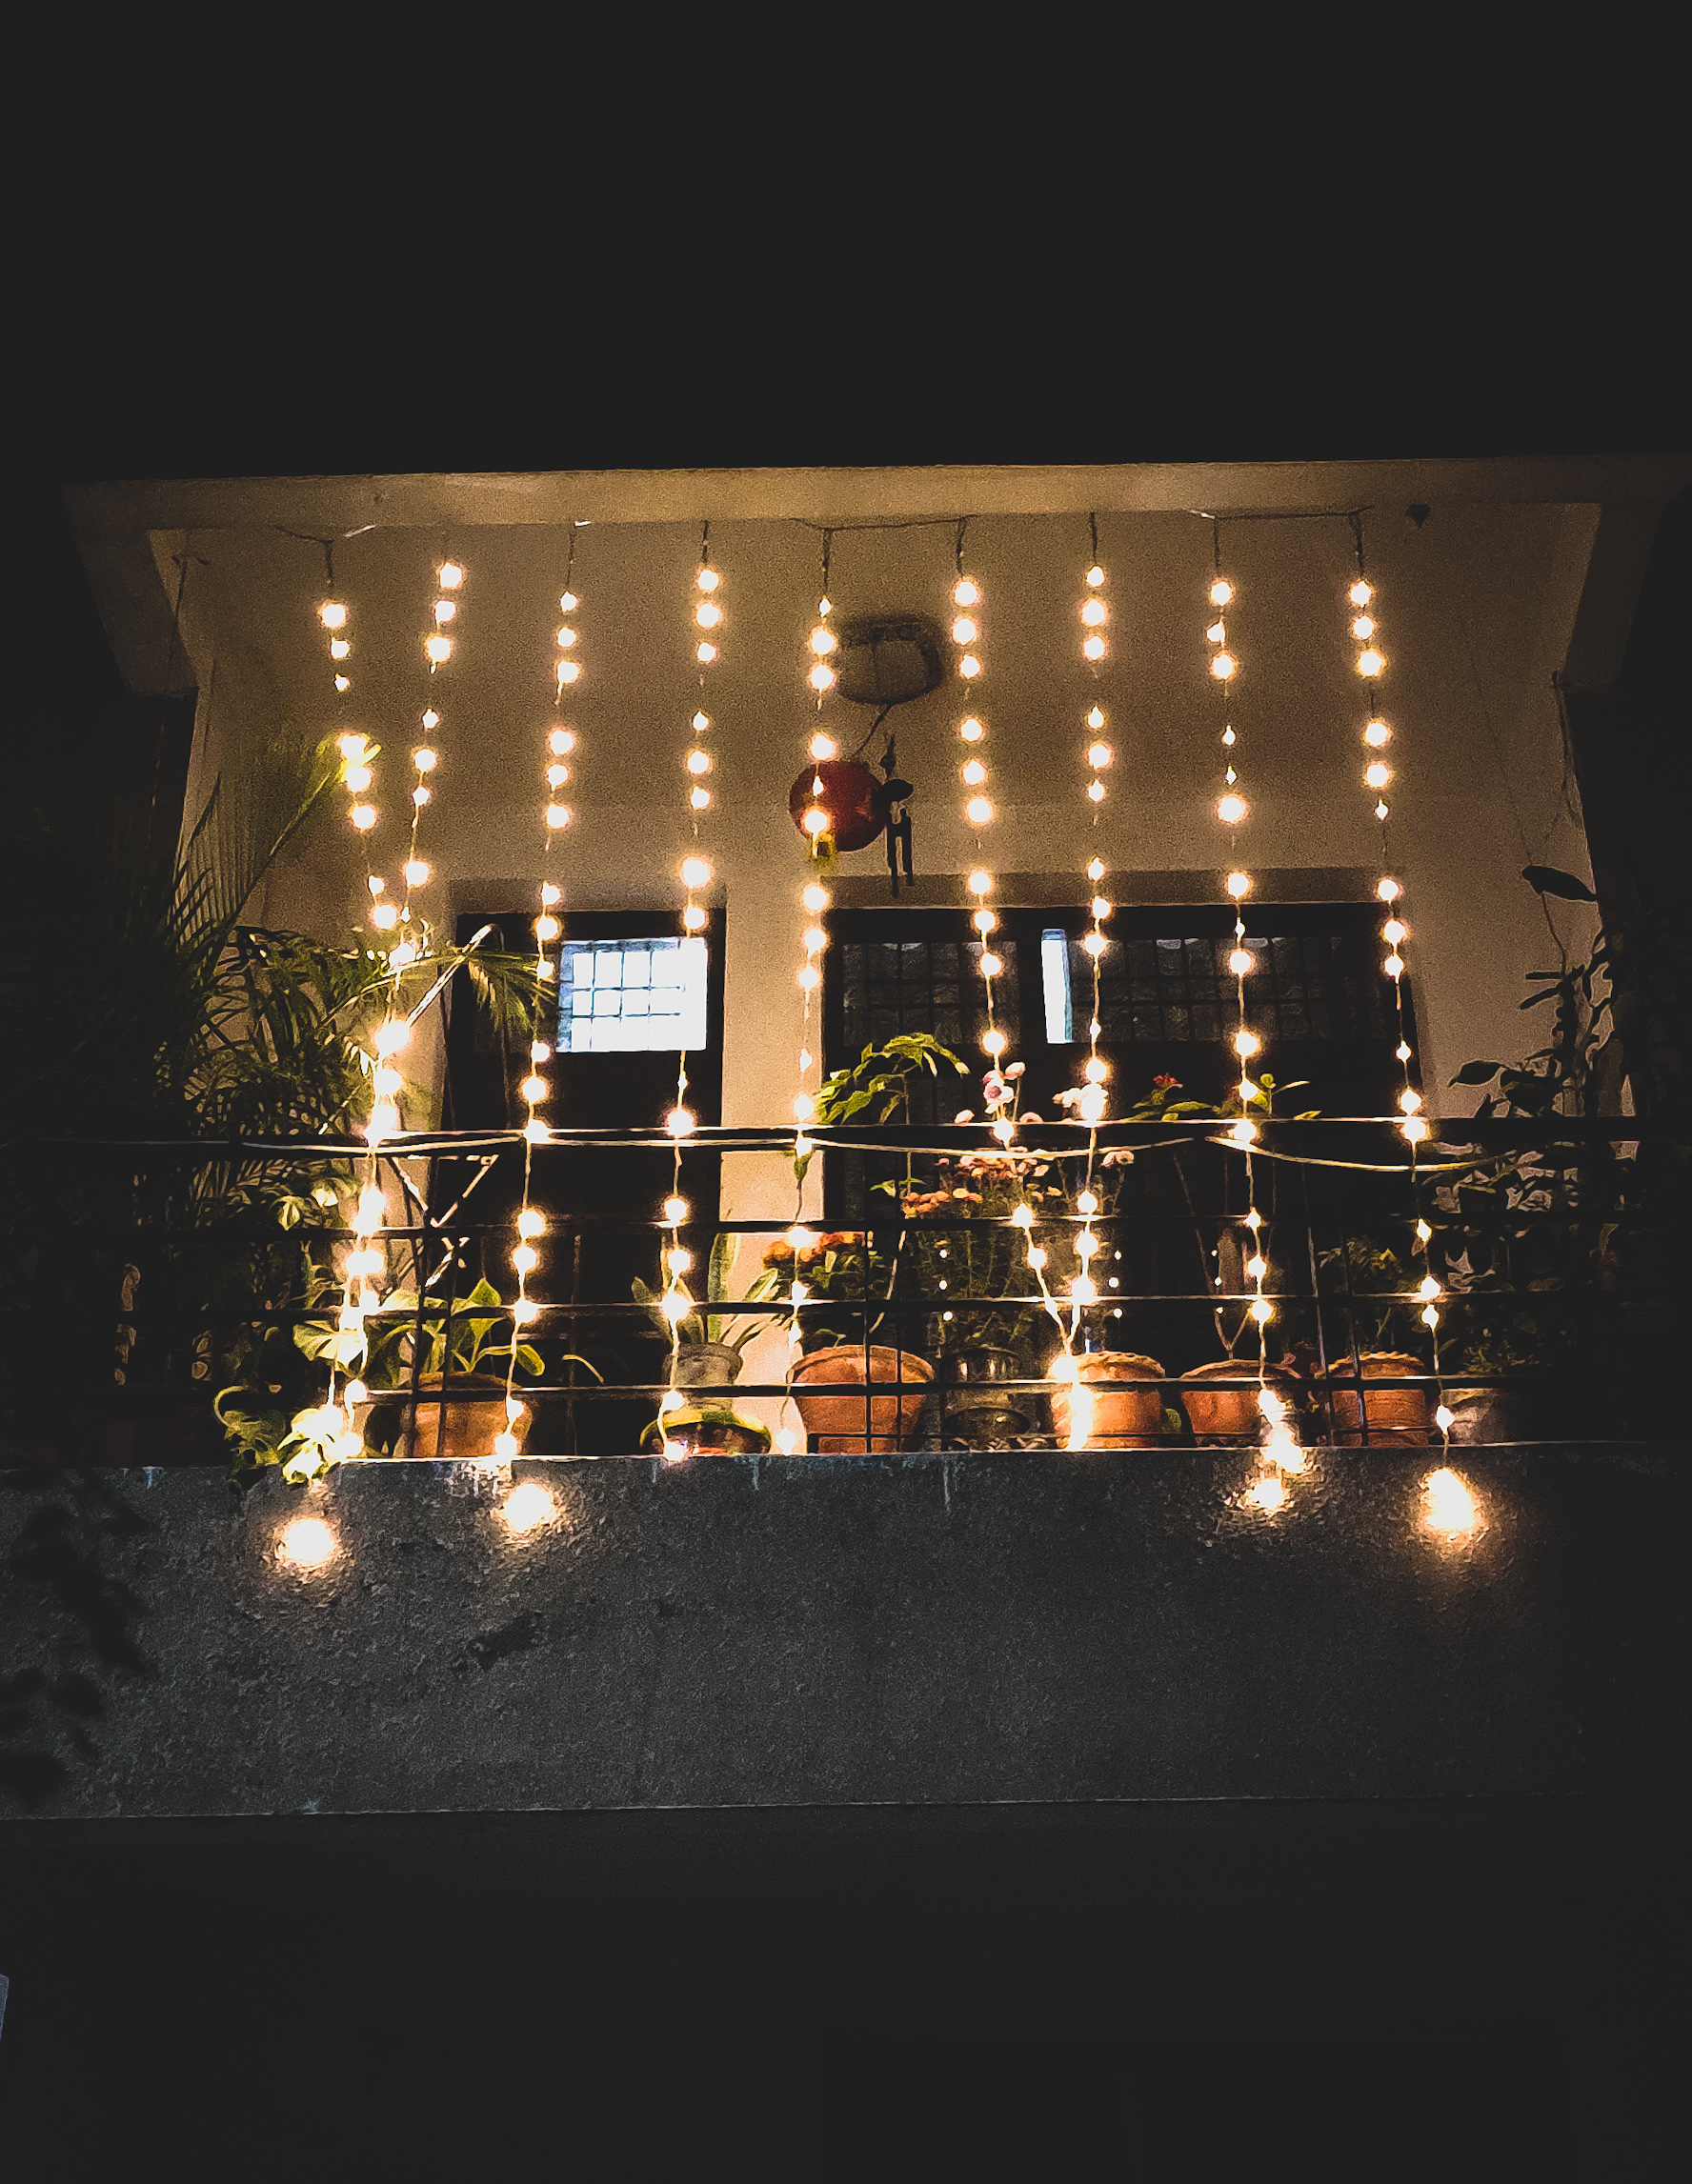 Lighting of a house